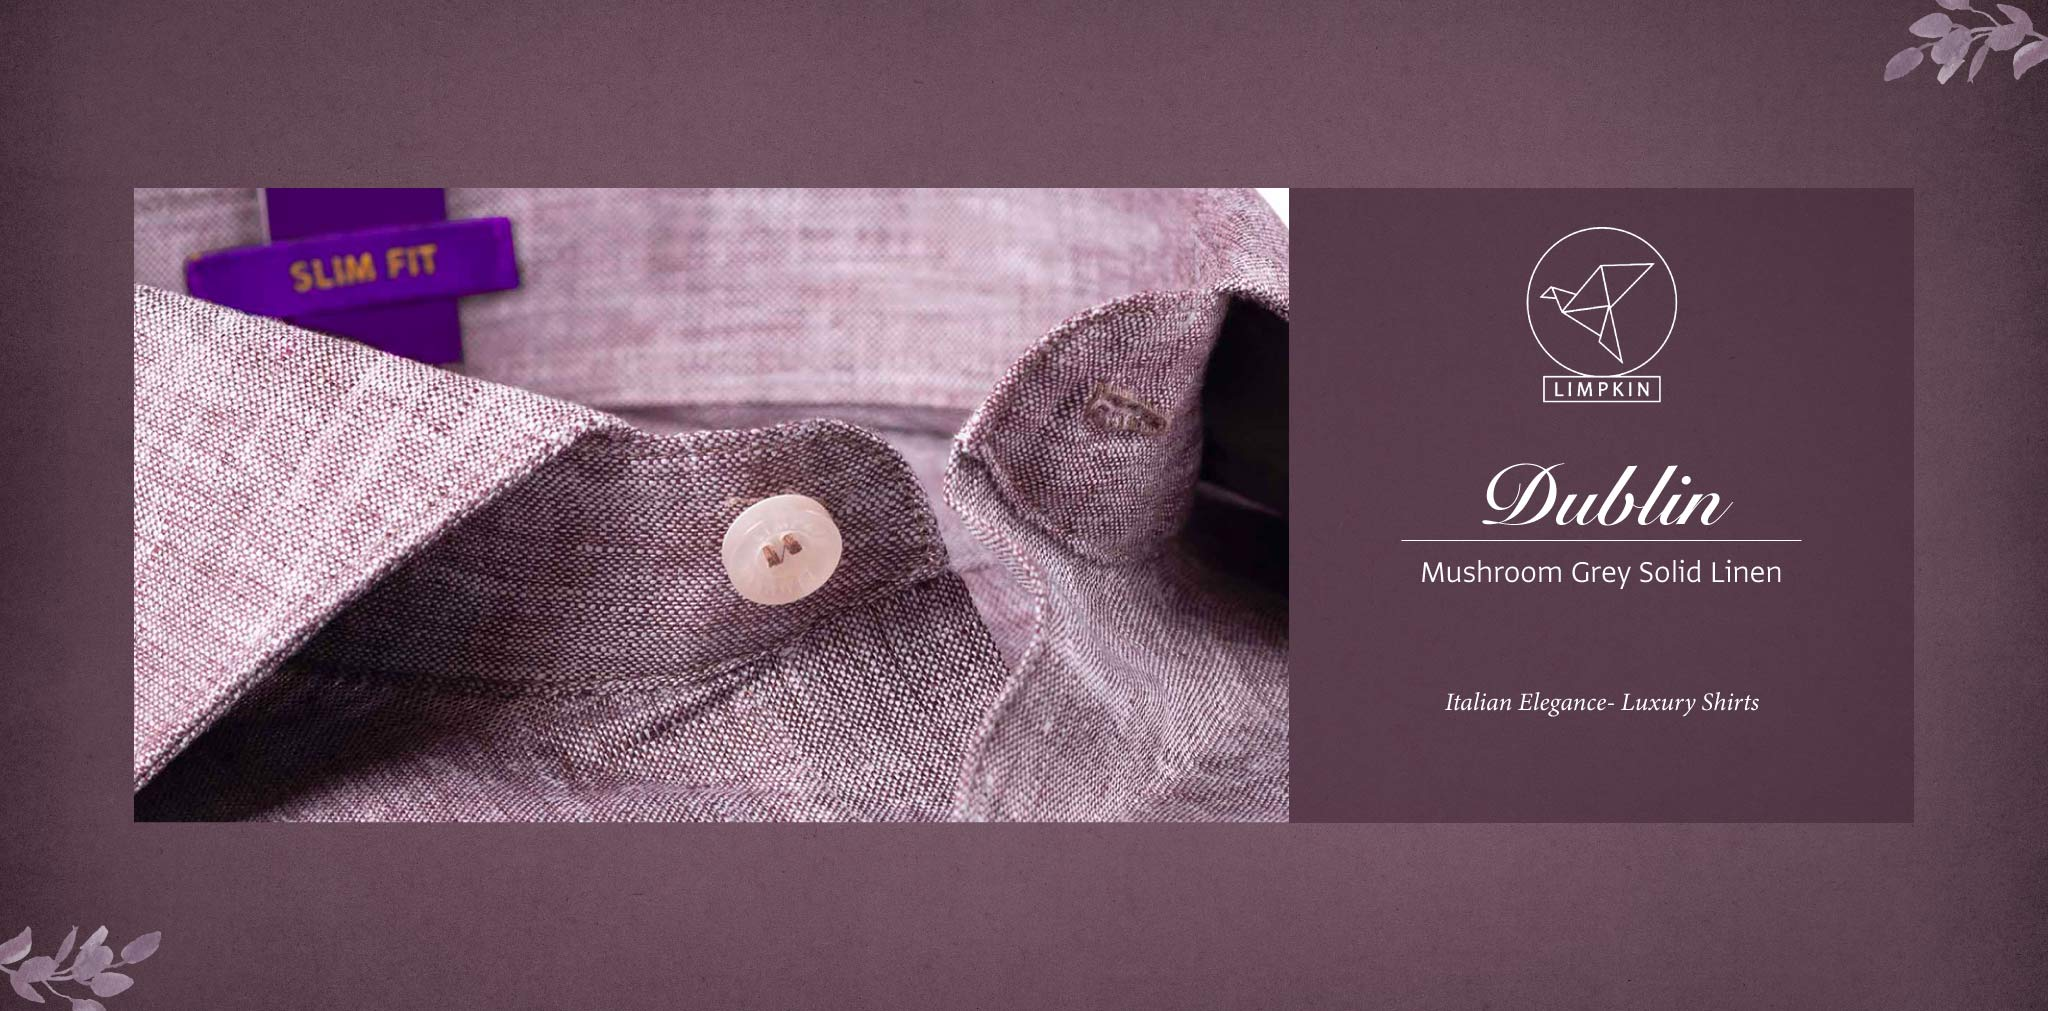 Dublin- Mushroom Grey Solid Linen- 66's Lea Pure Luxury Linen- Delivery from 26th Sept - Banner